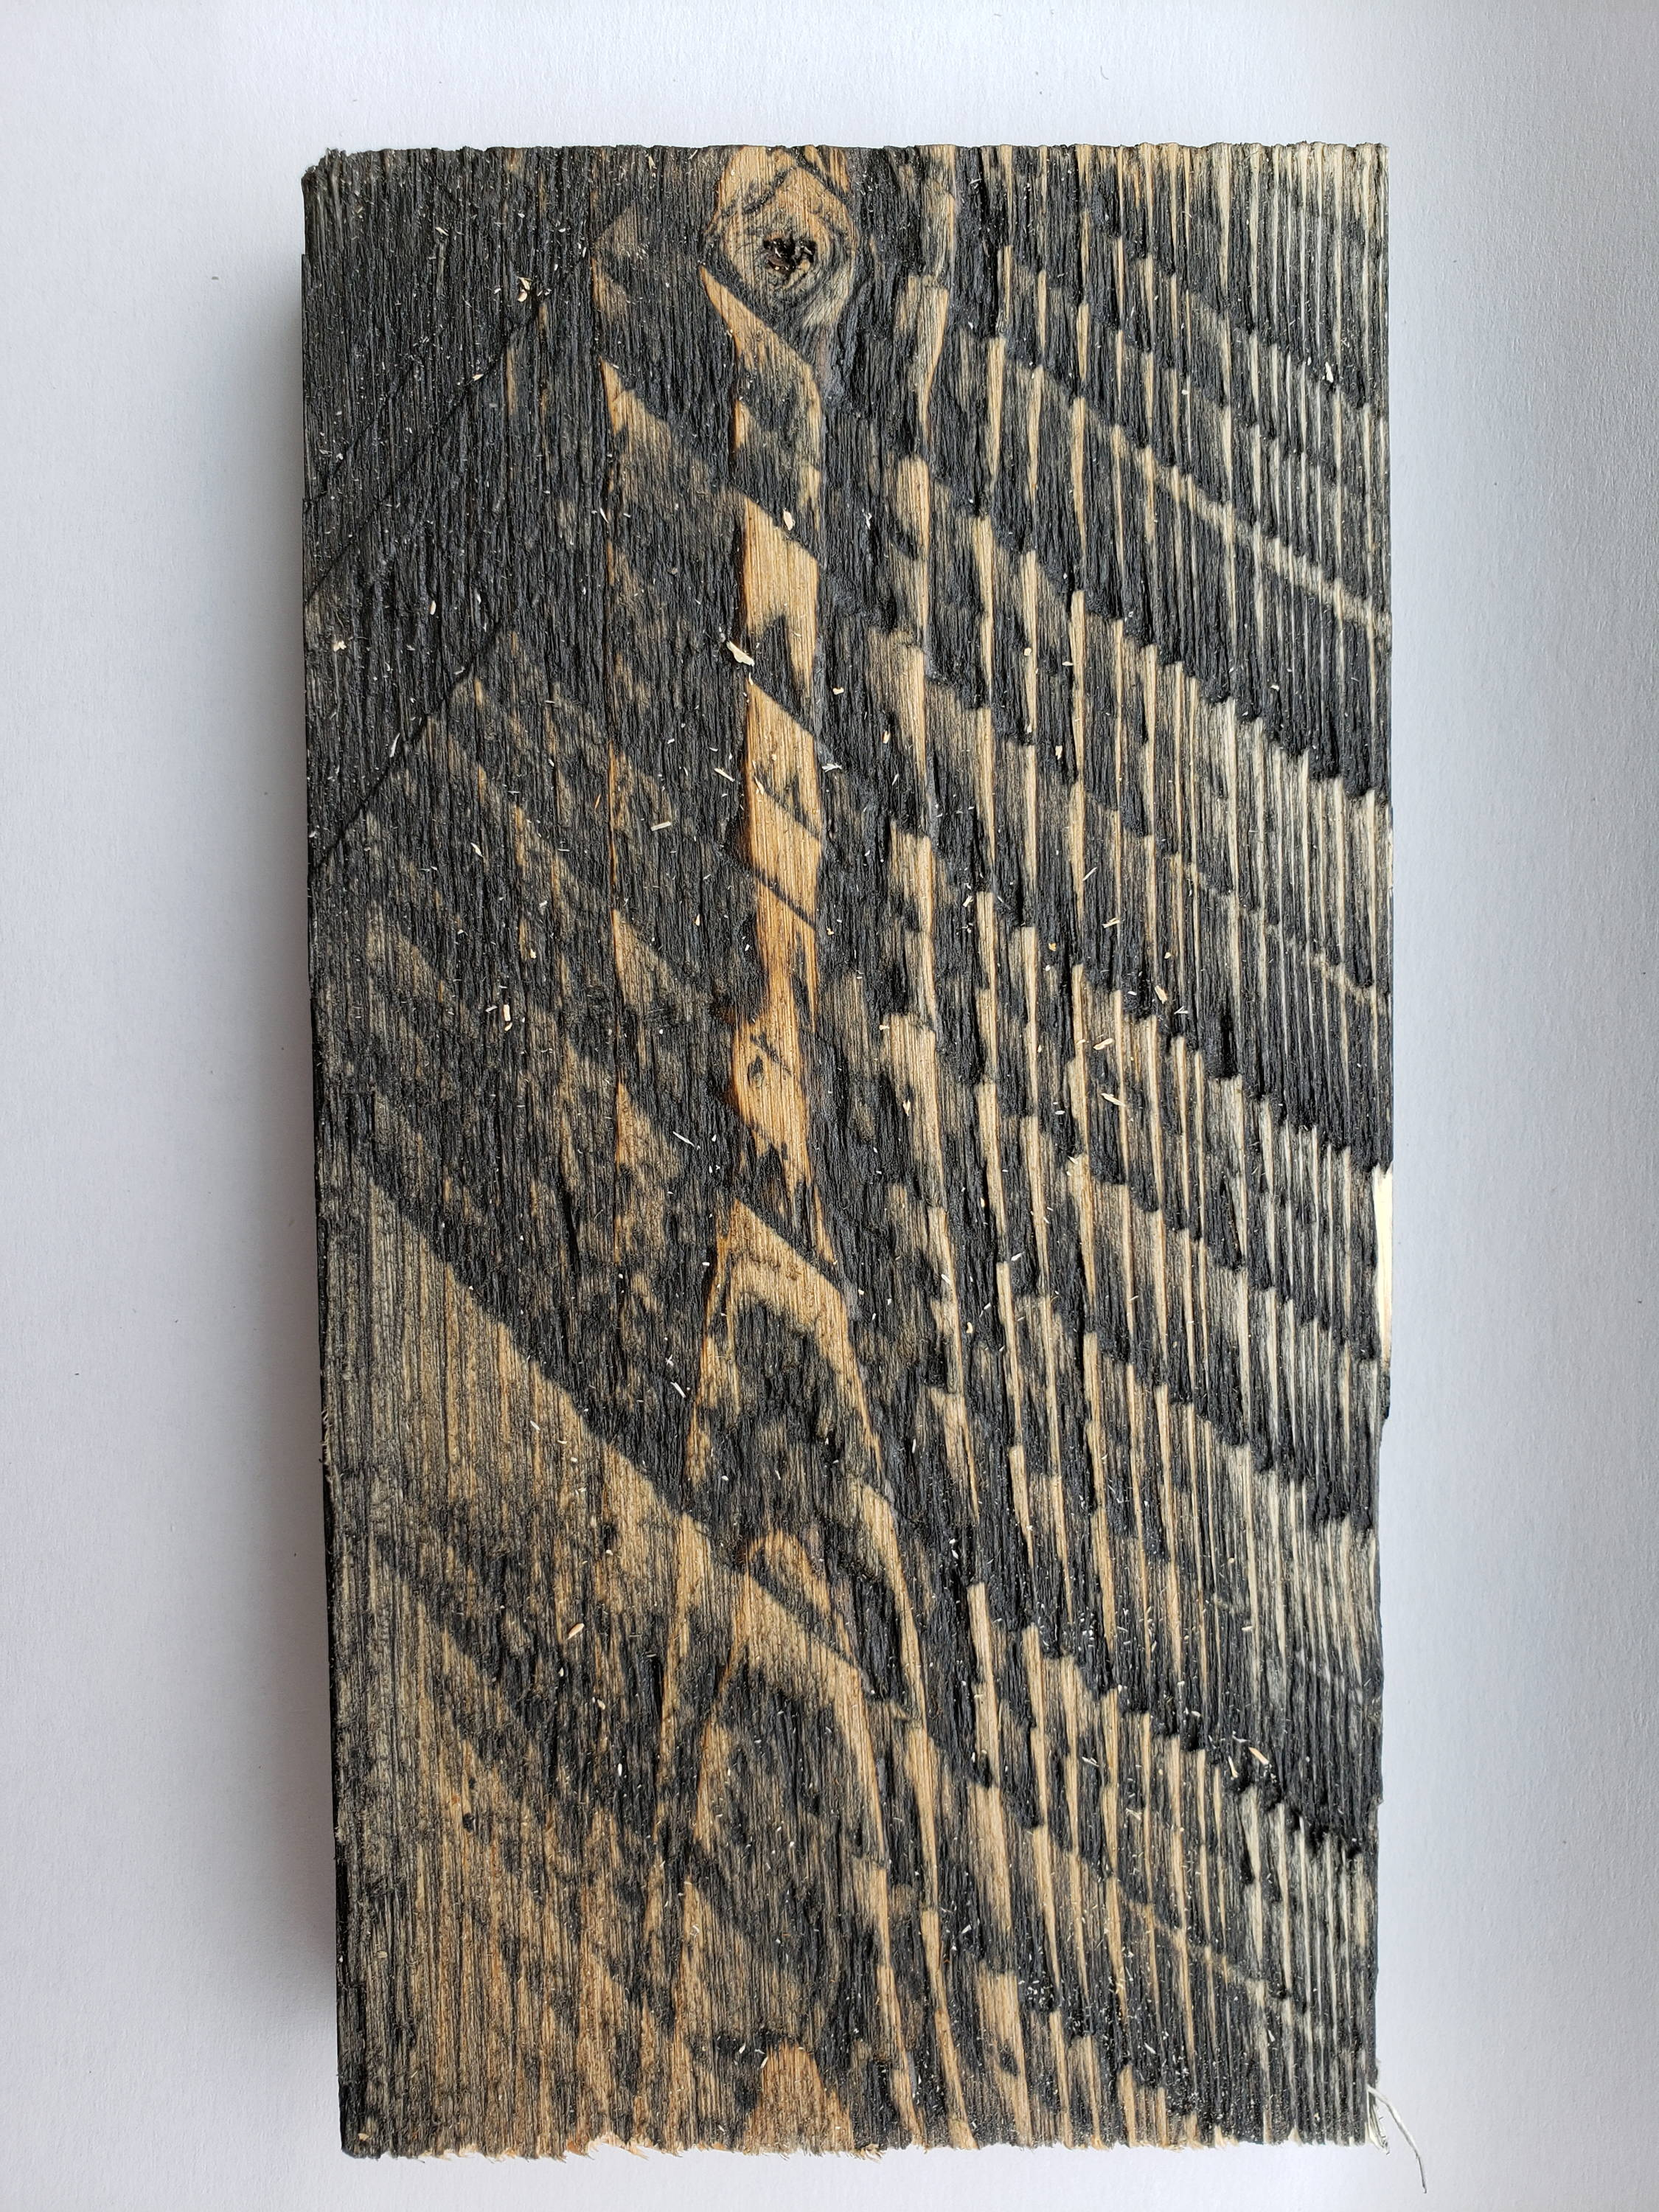 Blackfoot Ghost wood